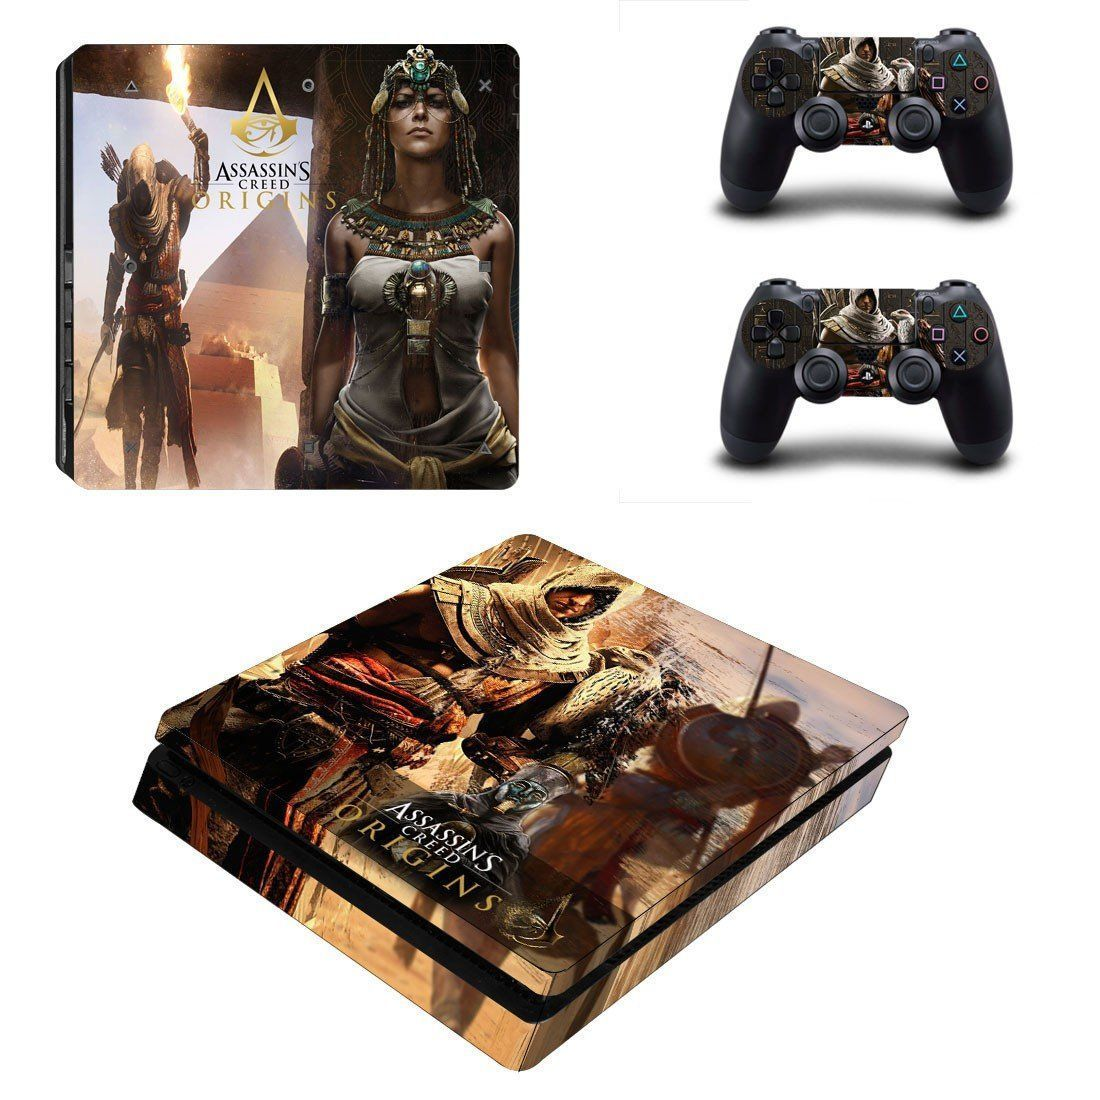 Assassin's Creed Origins ps4 slim skin decal for console and 2 controllers